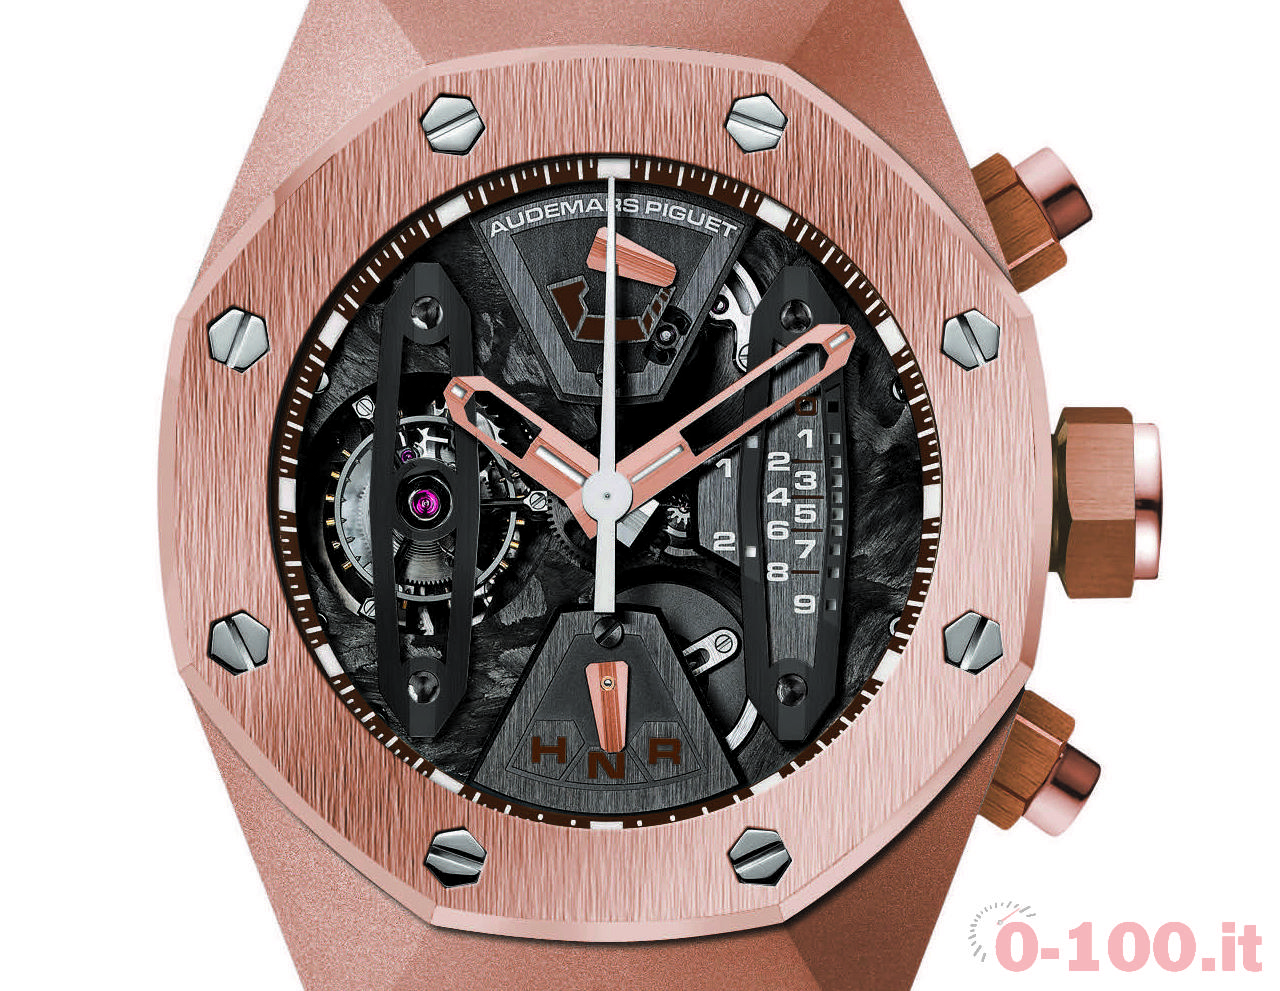 sihh-2015-audemars-piguet-tourbillon-cronografo-royal-oak-concept-44-mm-ref-26223or-oo-d099cr-01_0-100_1